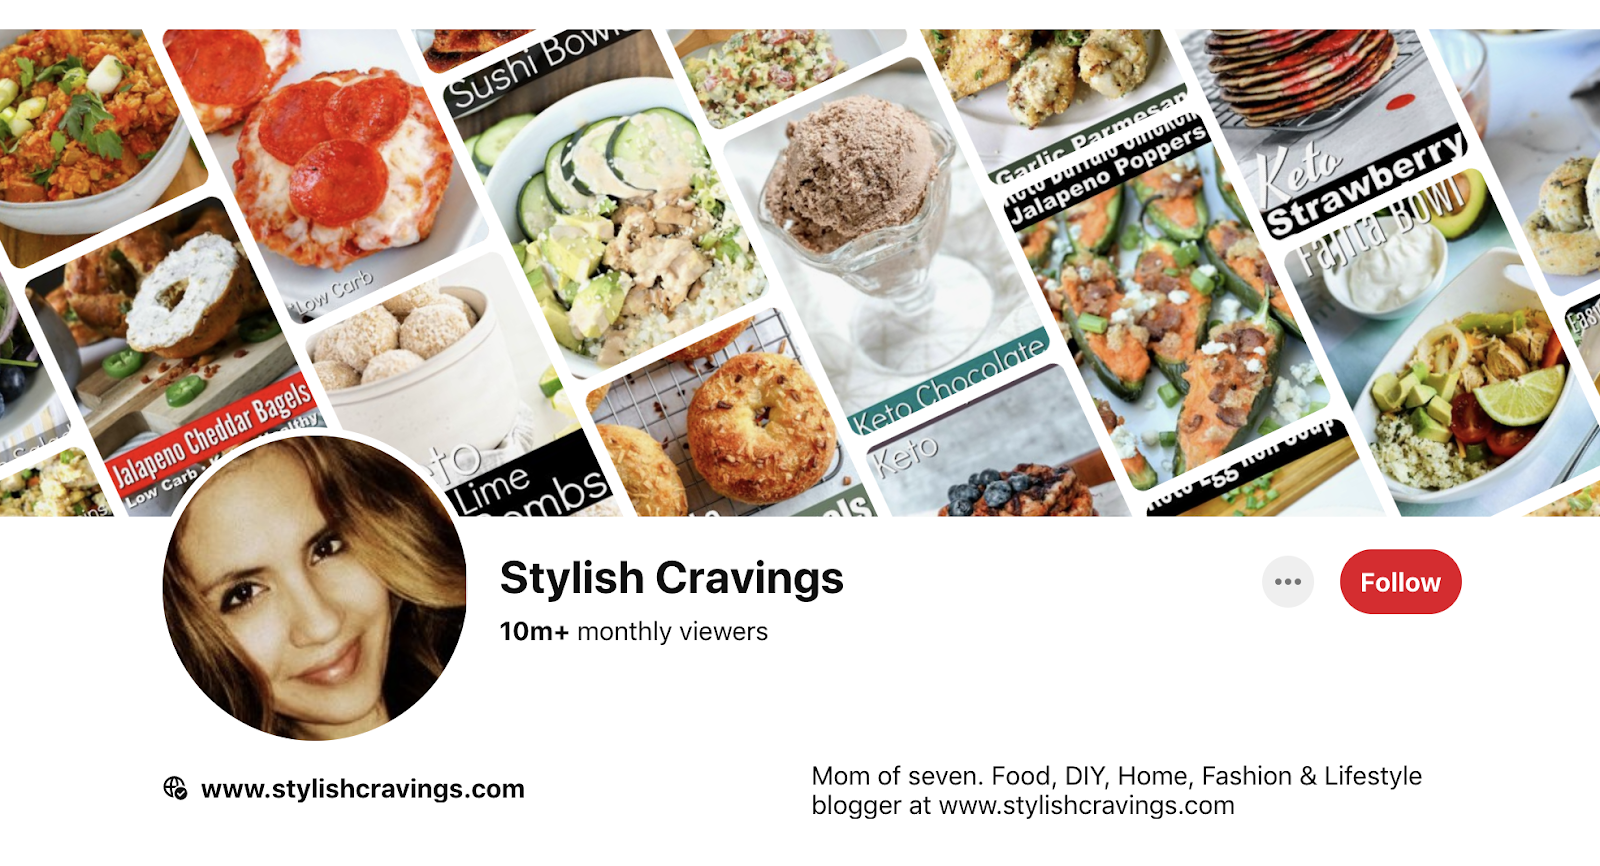 Stylish cravings